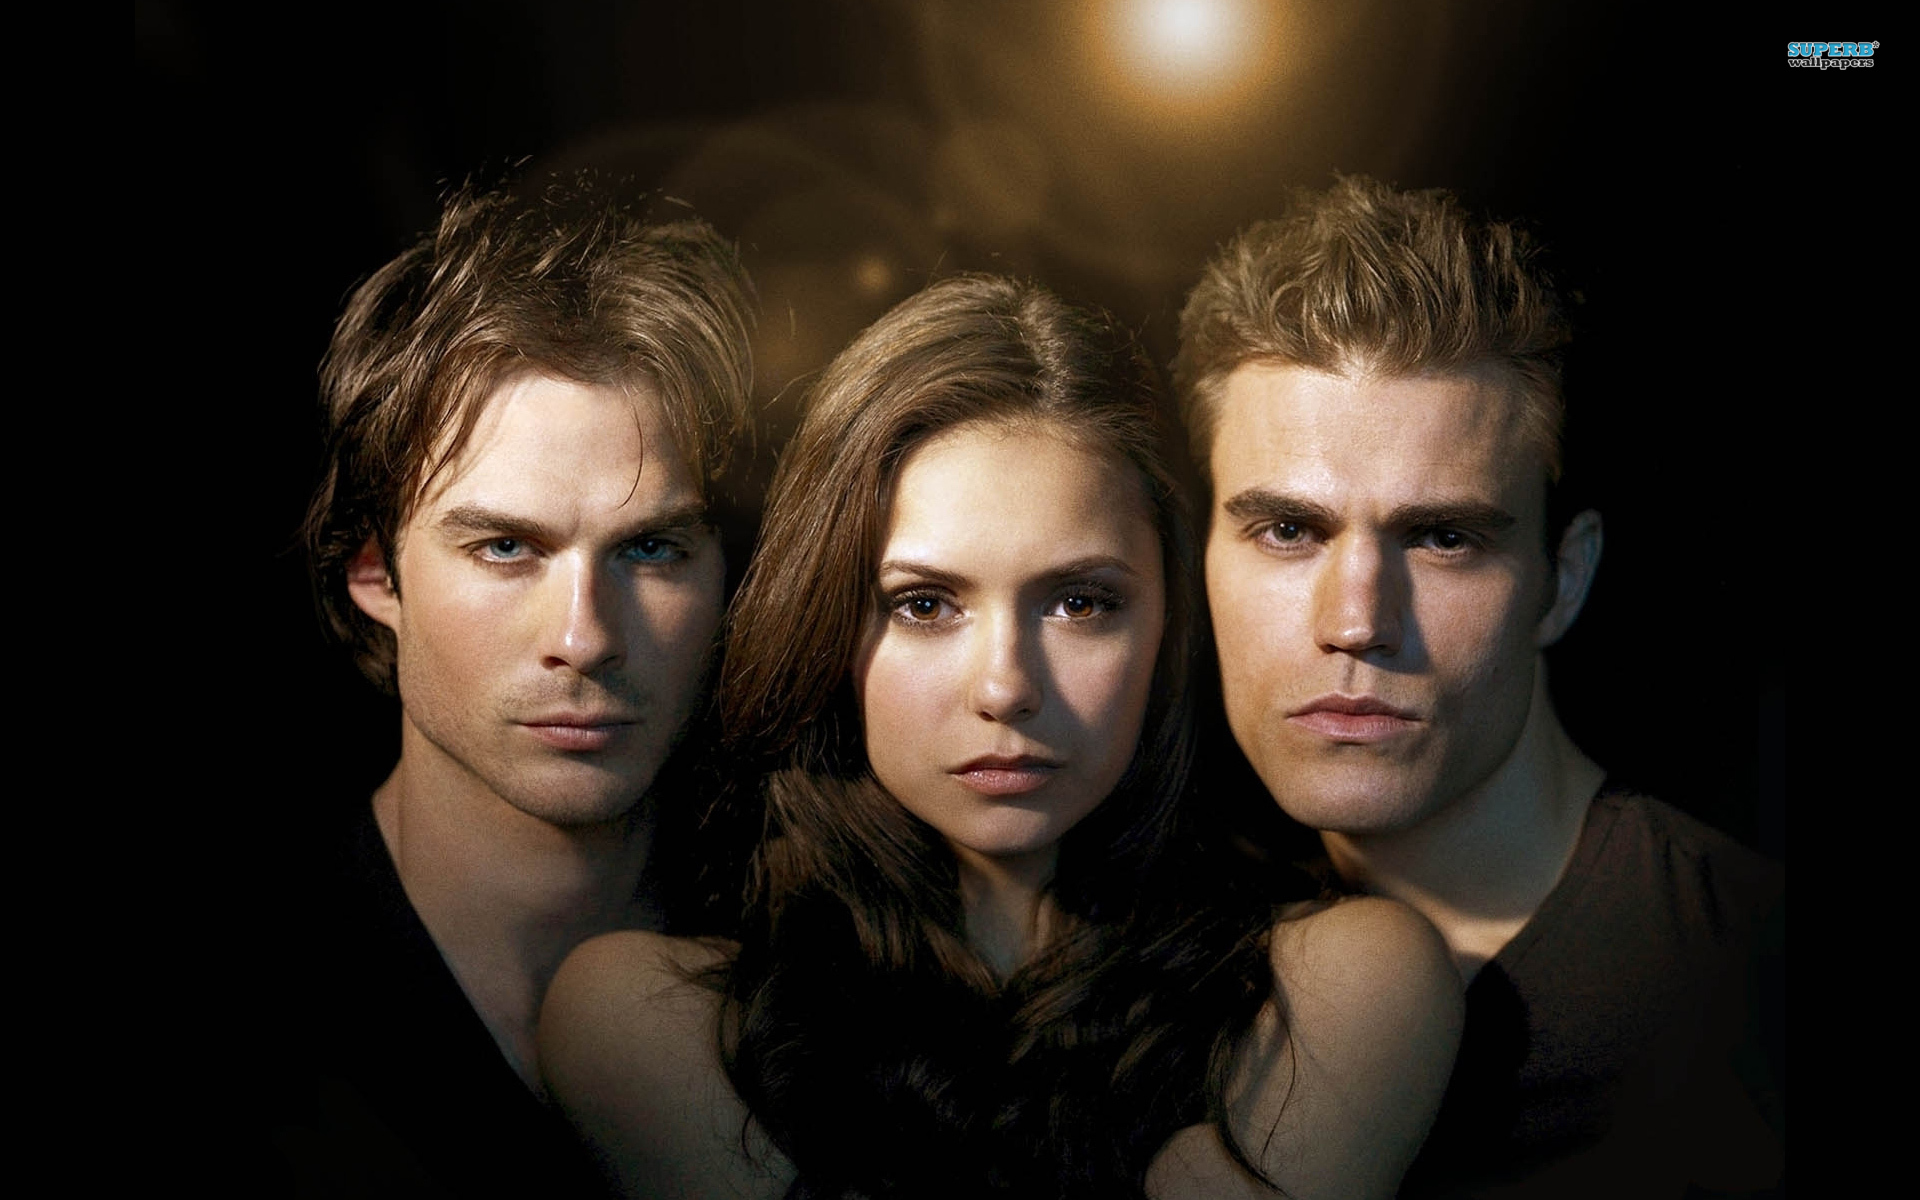 48+ Vampire Diaries Wallpapers for Desktop on WallpaperSafari